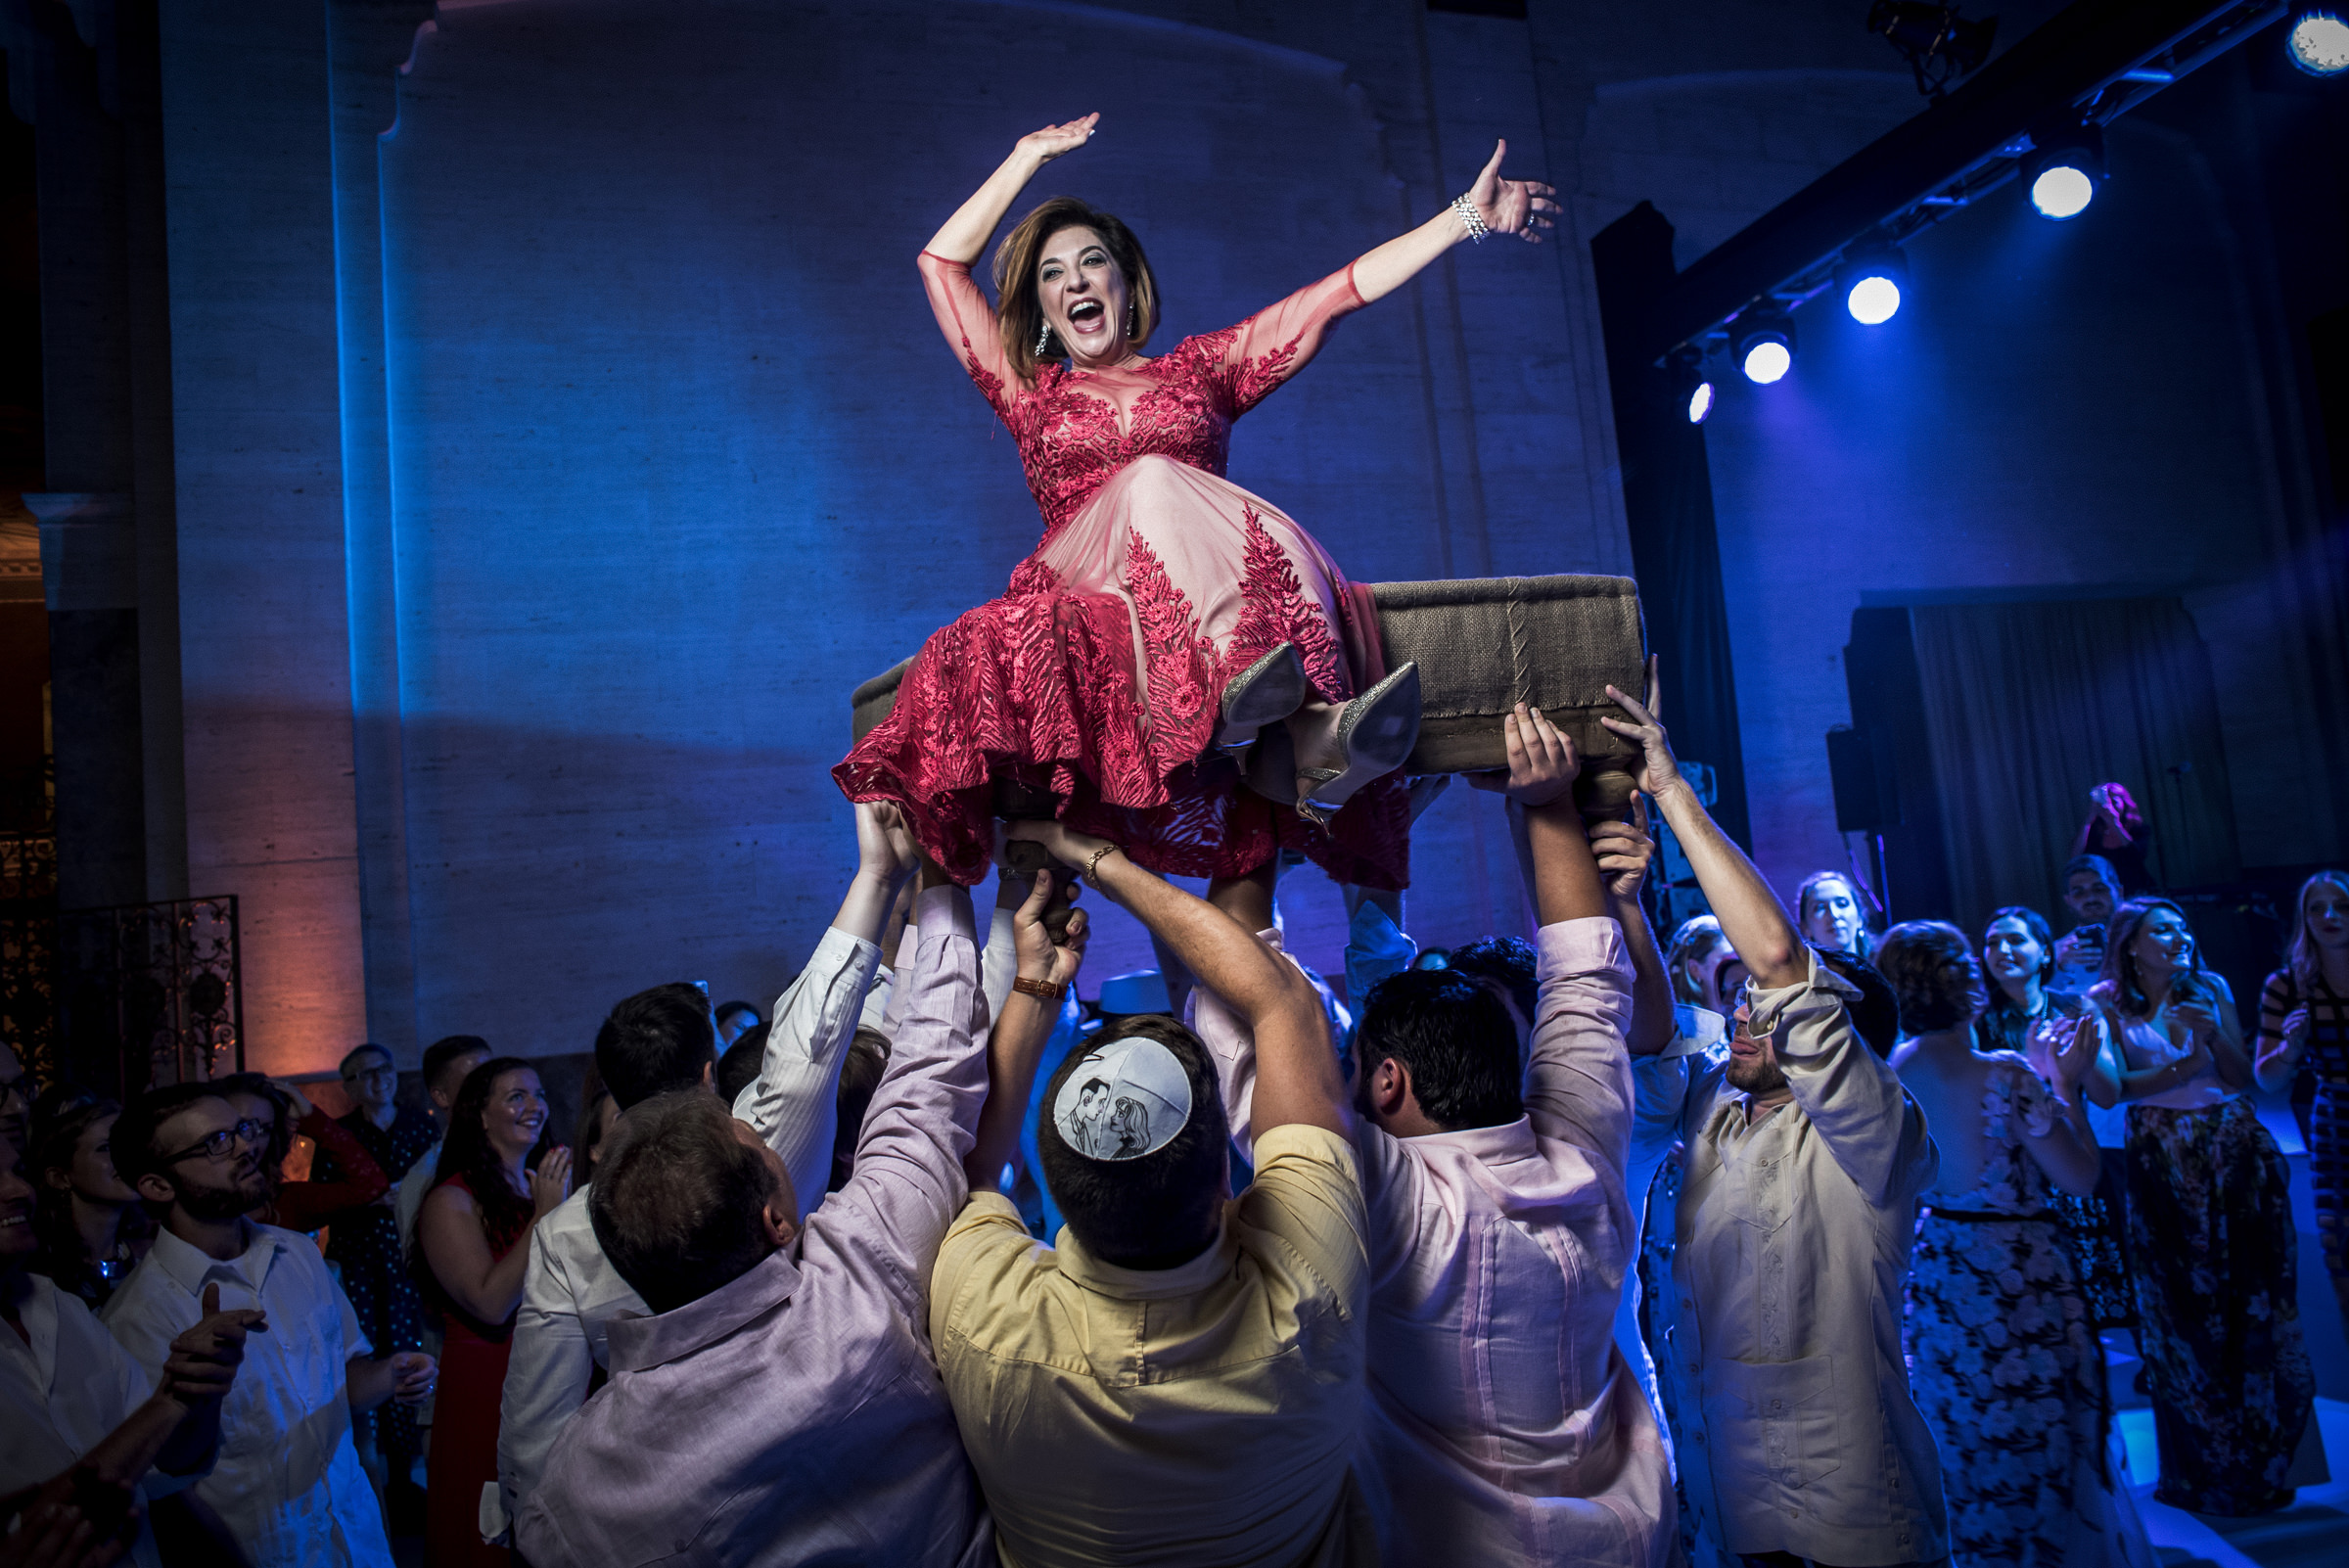 Ecstatic mother in red on divan during hora, by Victor Marti, El Marco Rojo Photography